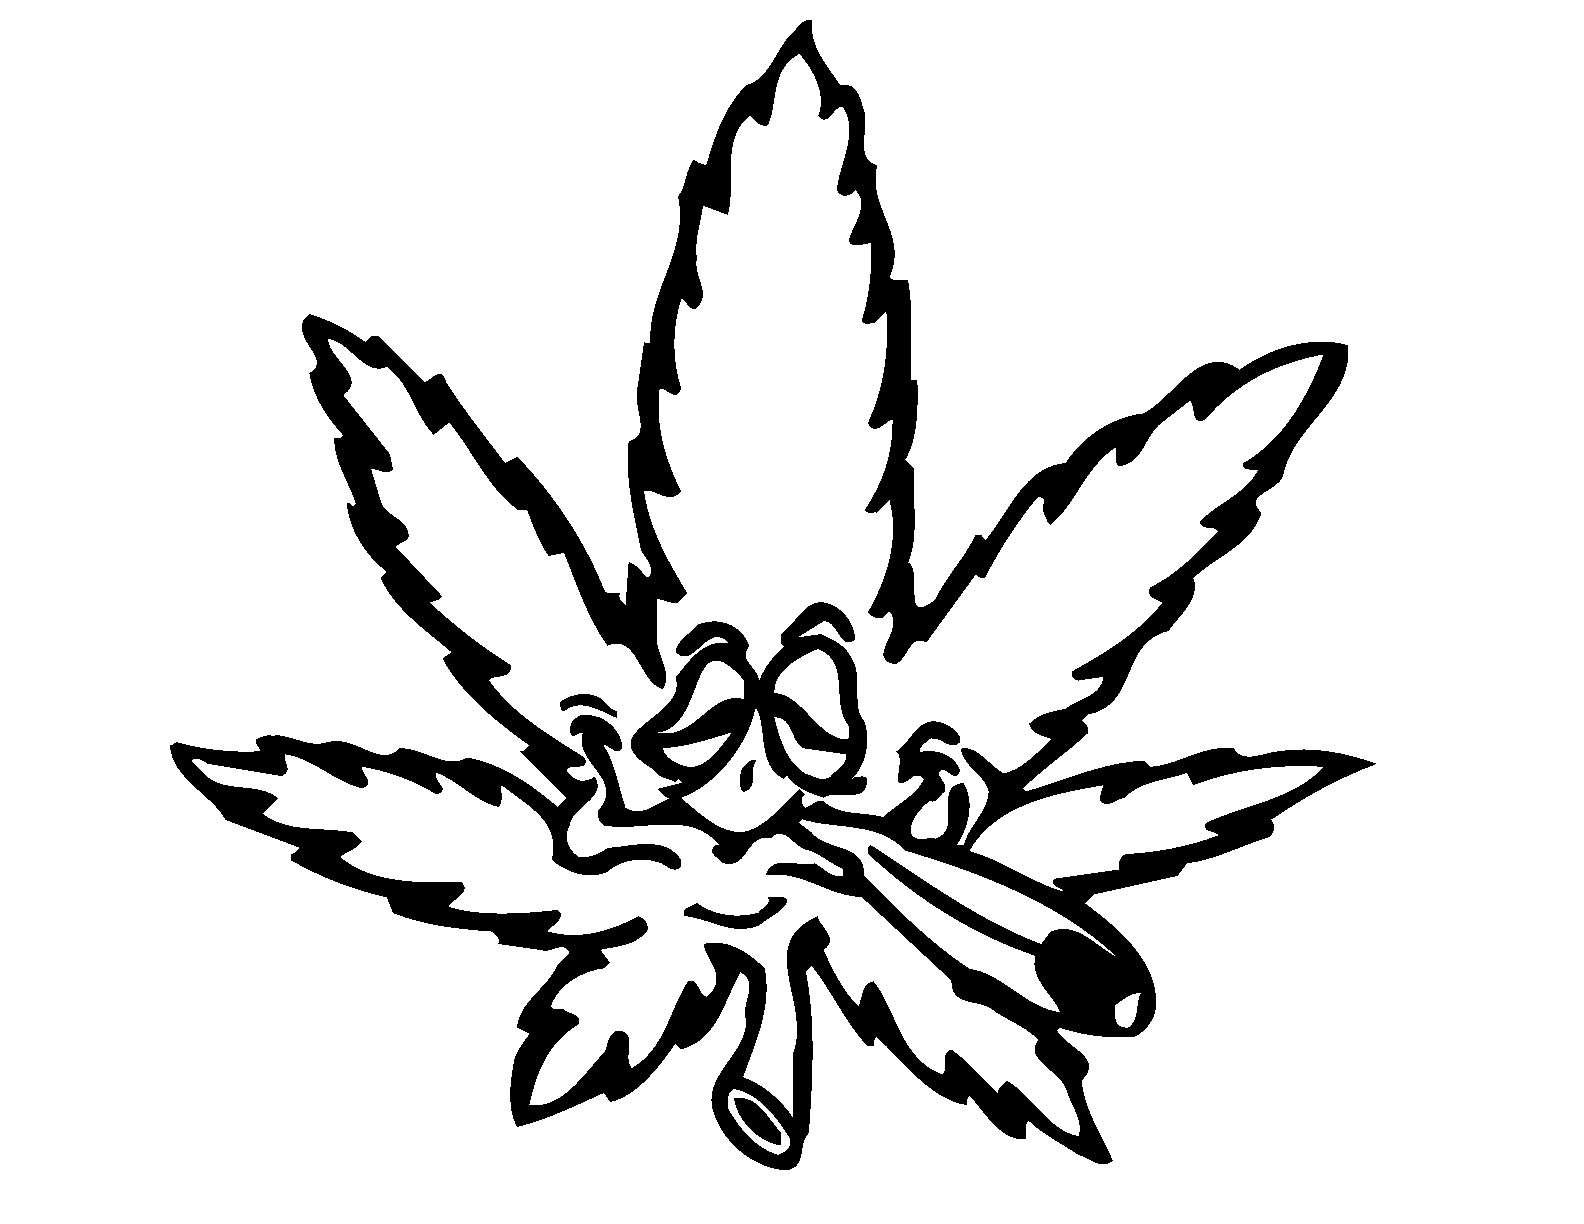 Free Weed Leaf, Download Free Clip Art, Free Clip Art on.